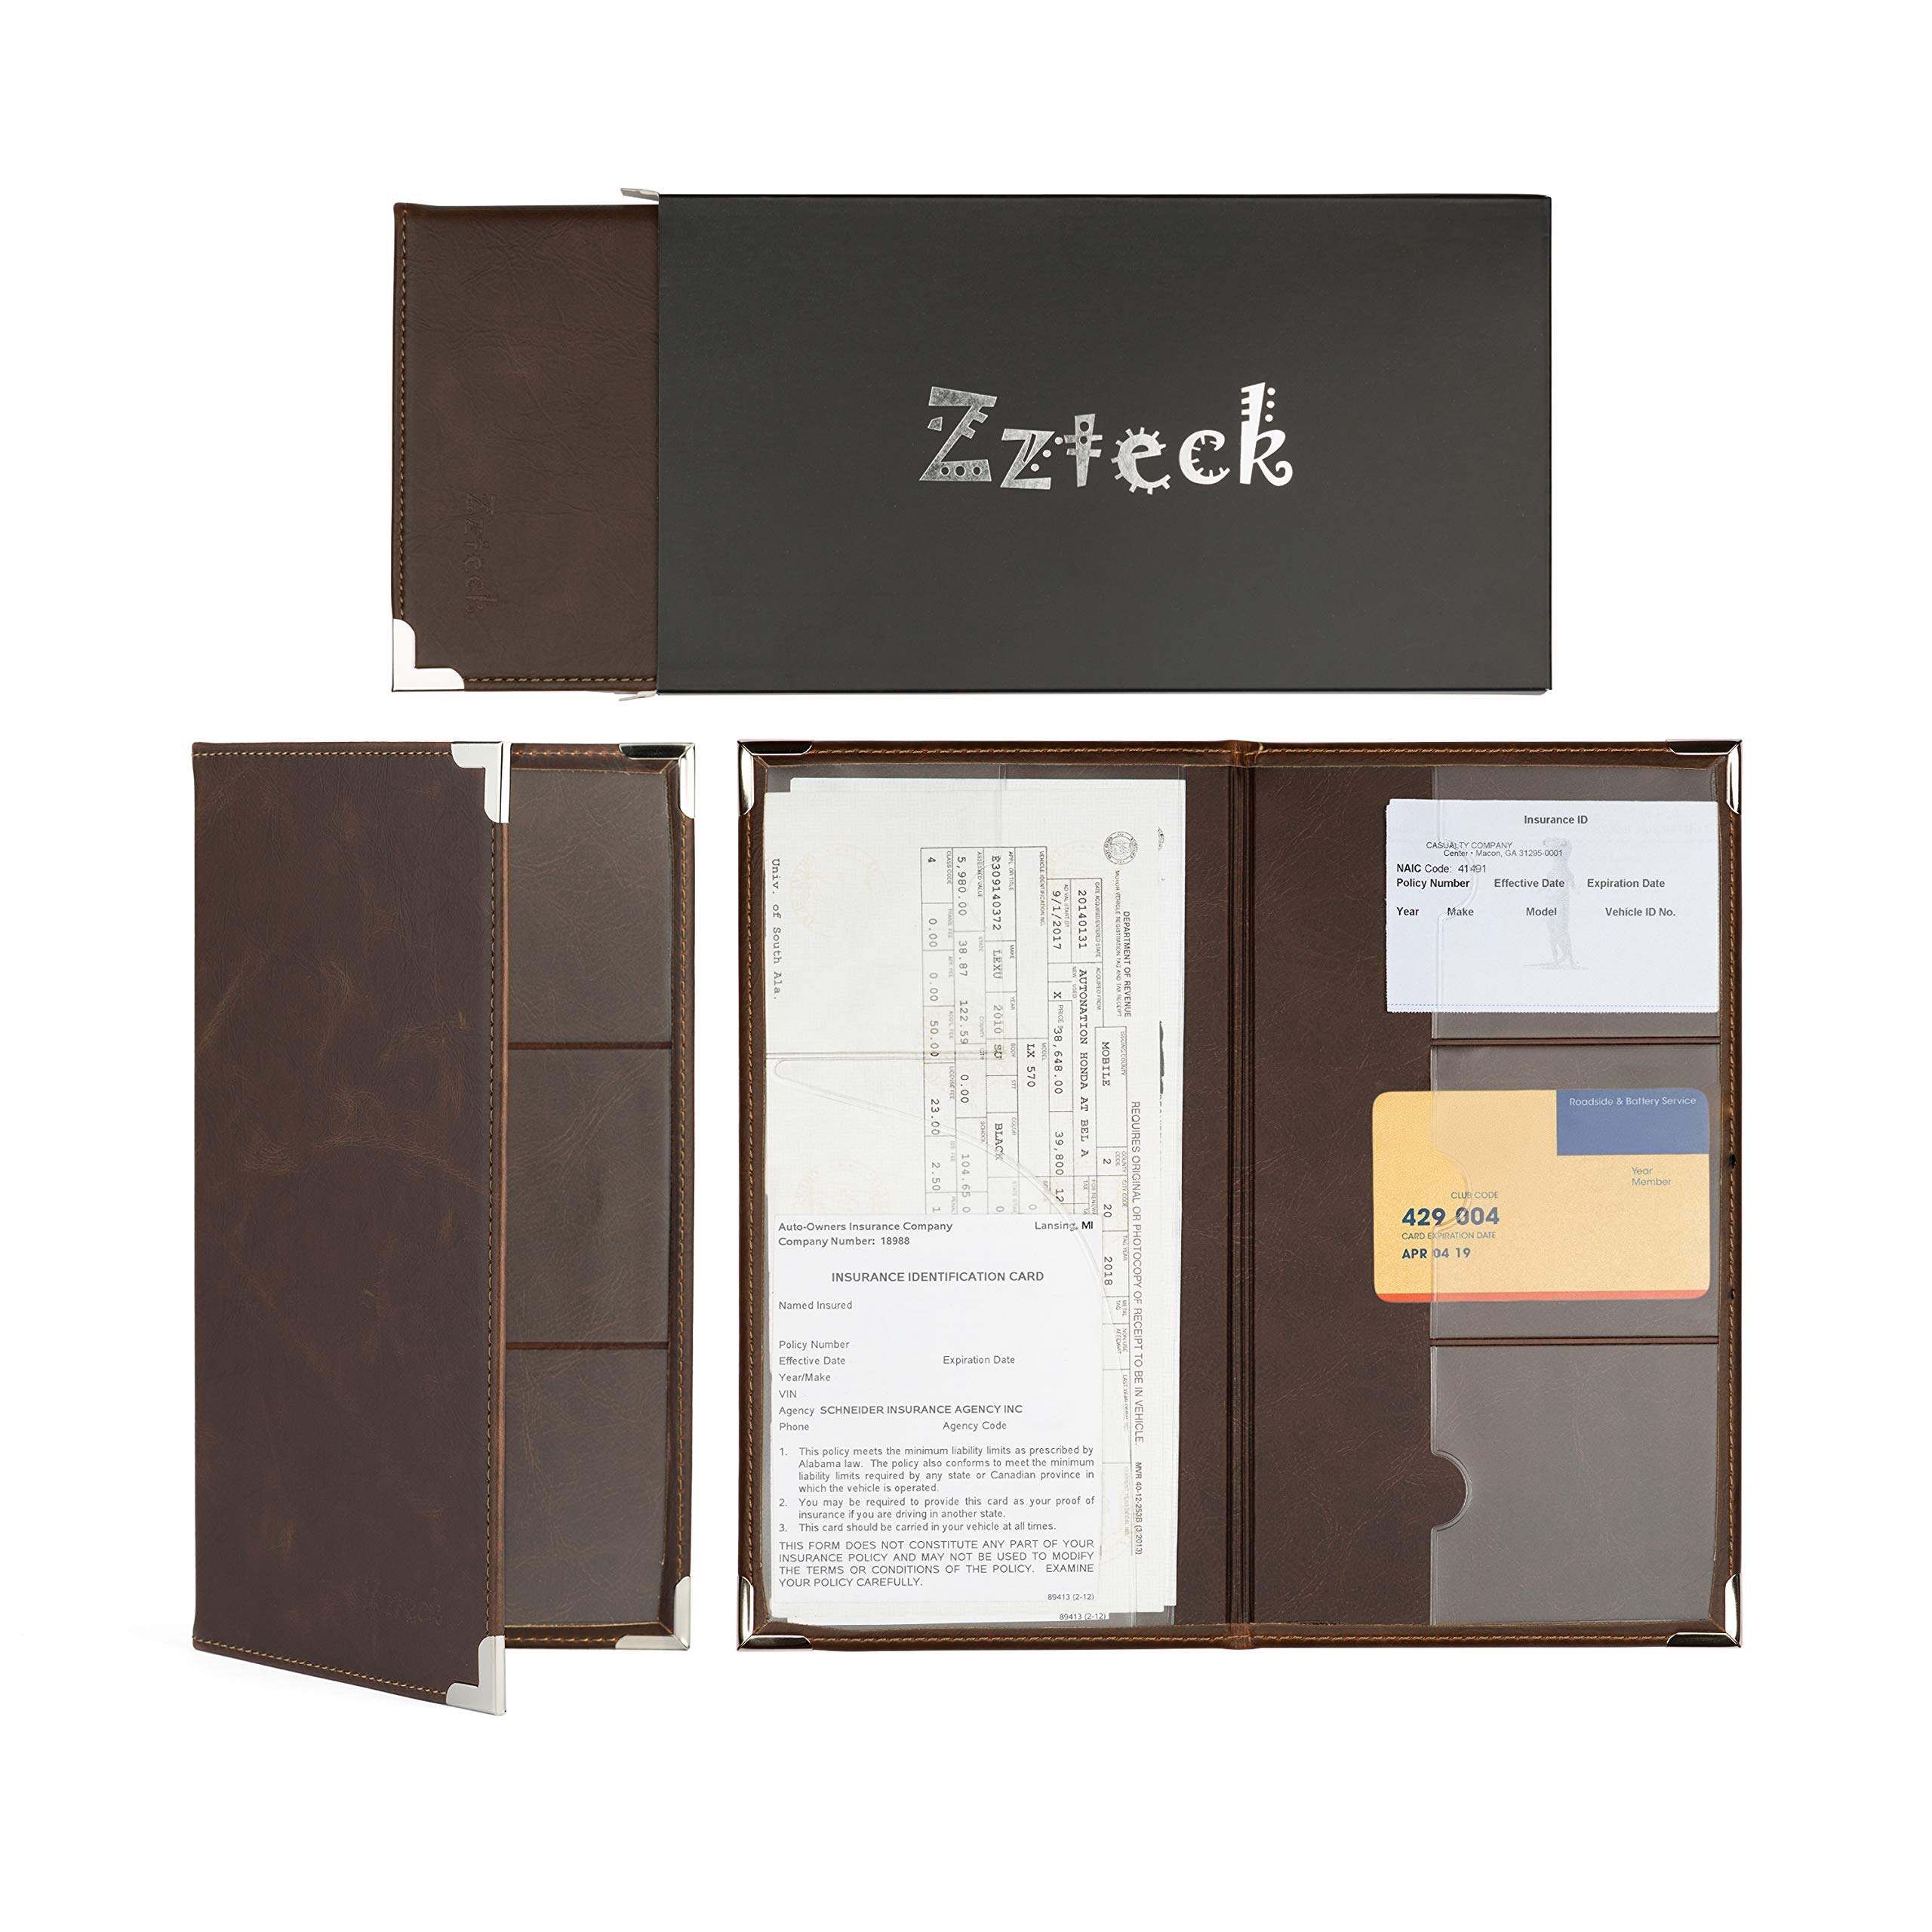 Zzteck Car Registration Holder for Insurance Card Documents Auto Organizer Luxury PU Leather Wallet Case by Zzteck